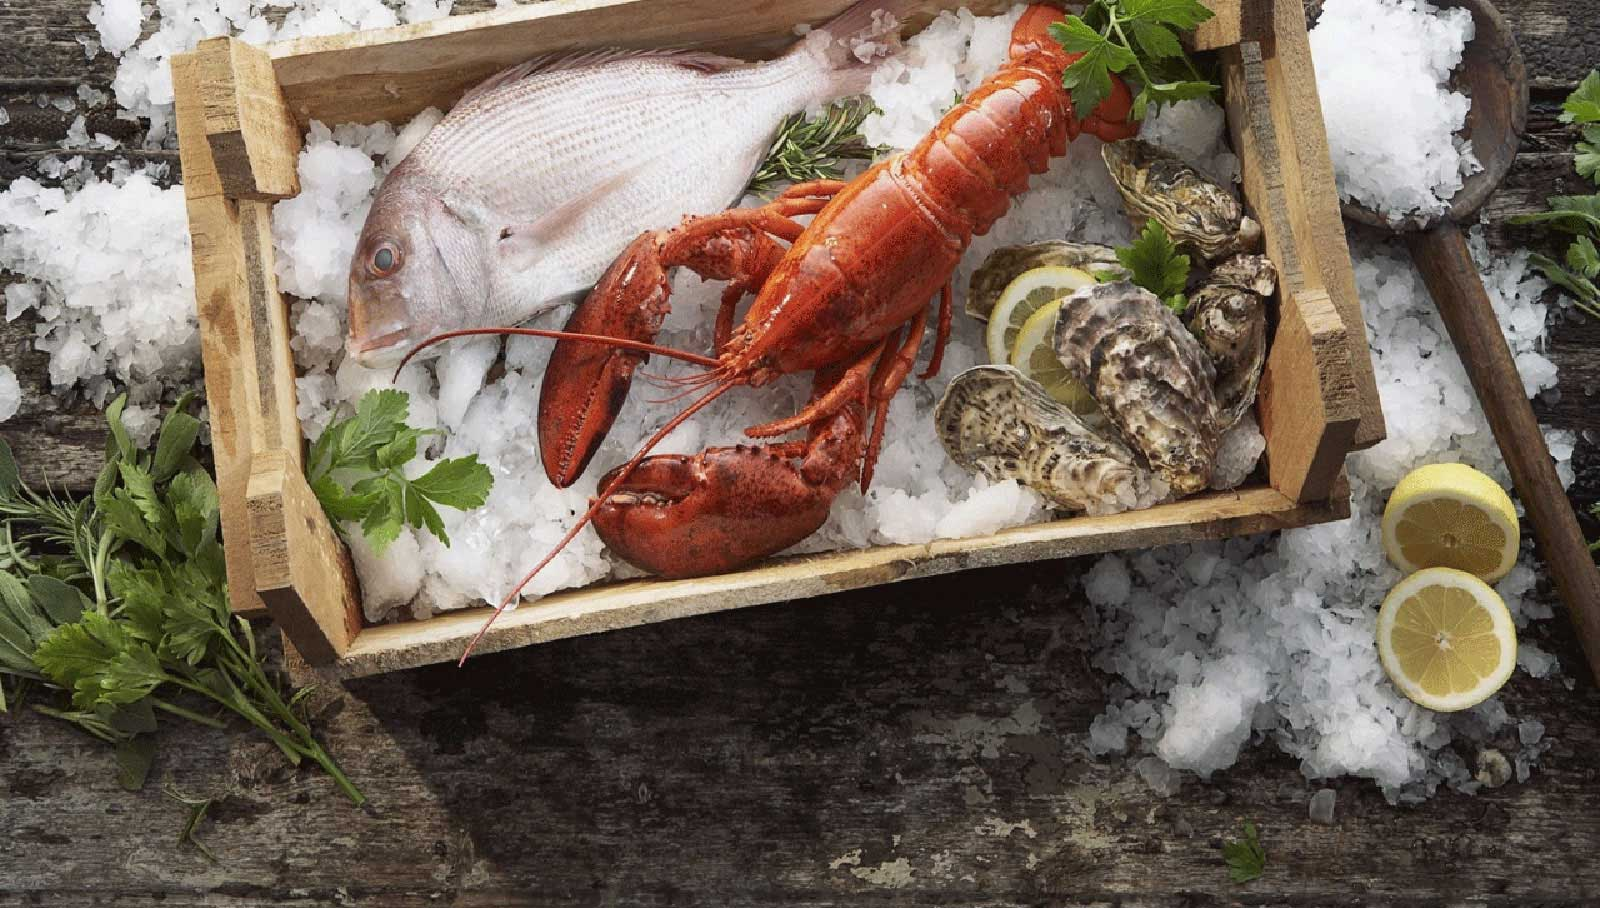 Where to Buy Seafood Online?